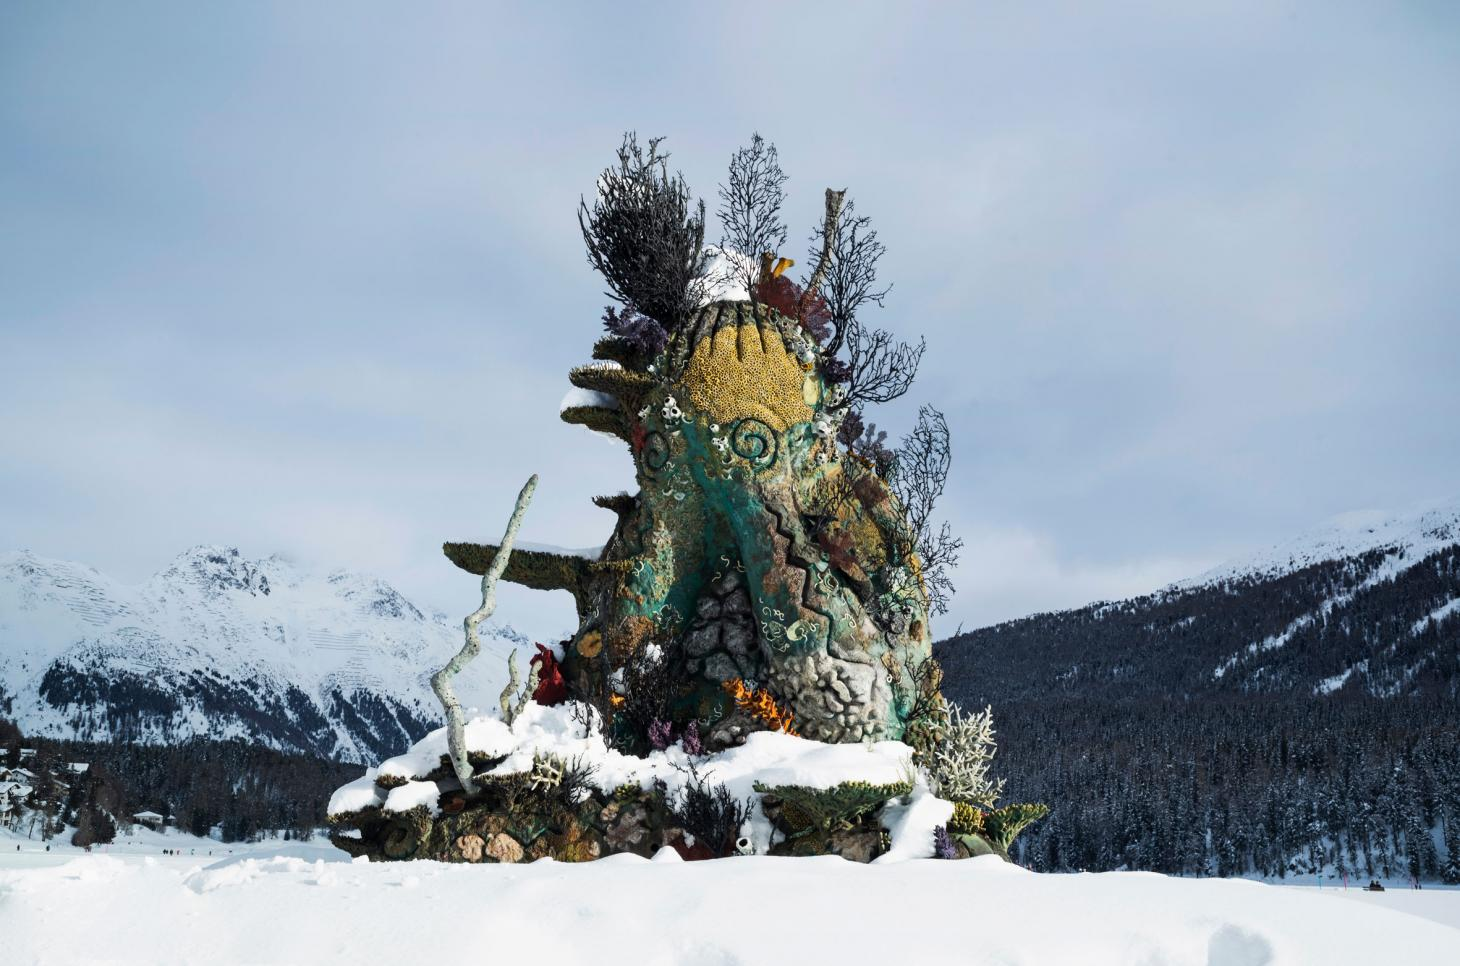 Photograph of Damien Hirst's The Monk sculpture being installed on Lake St. Moritz